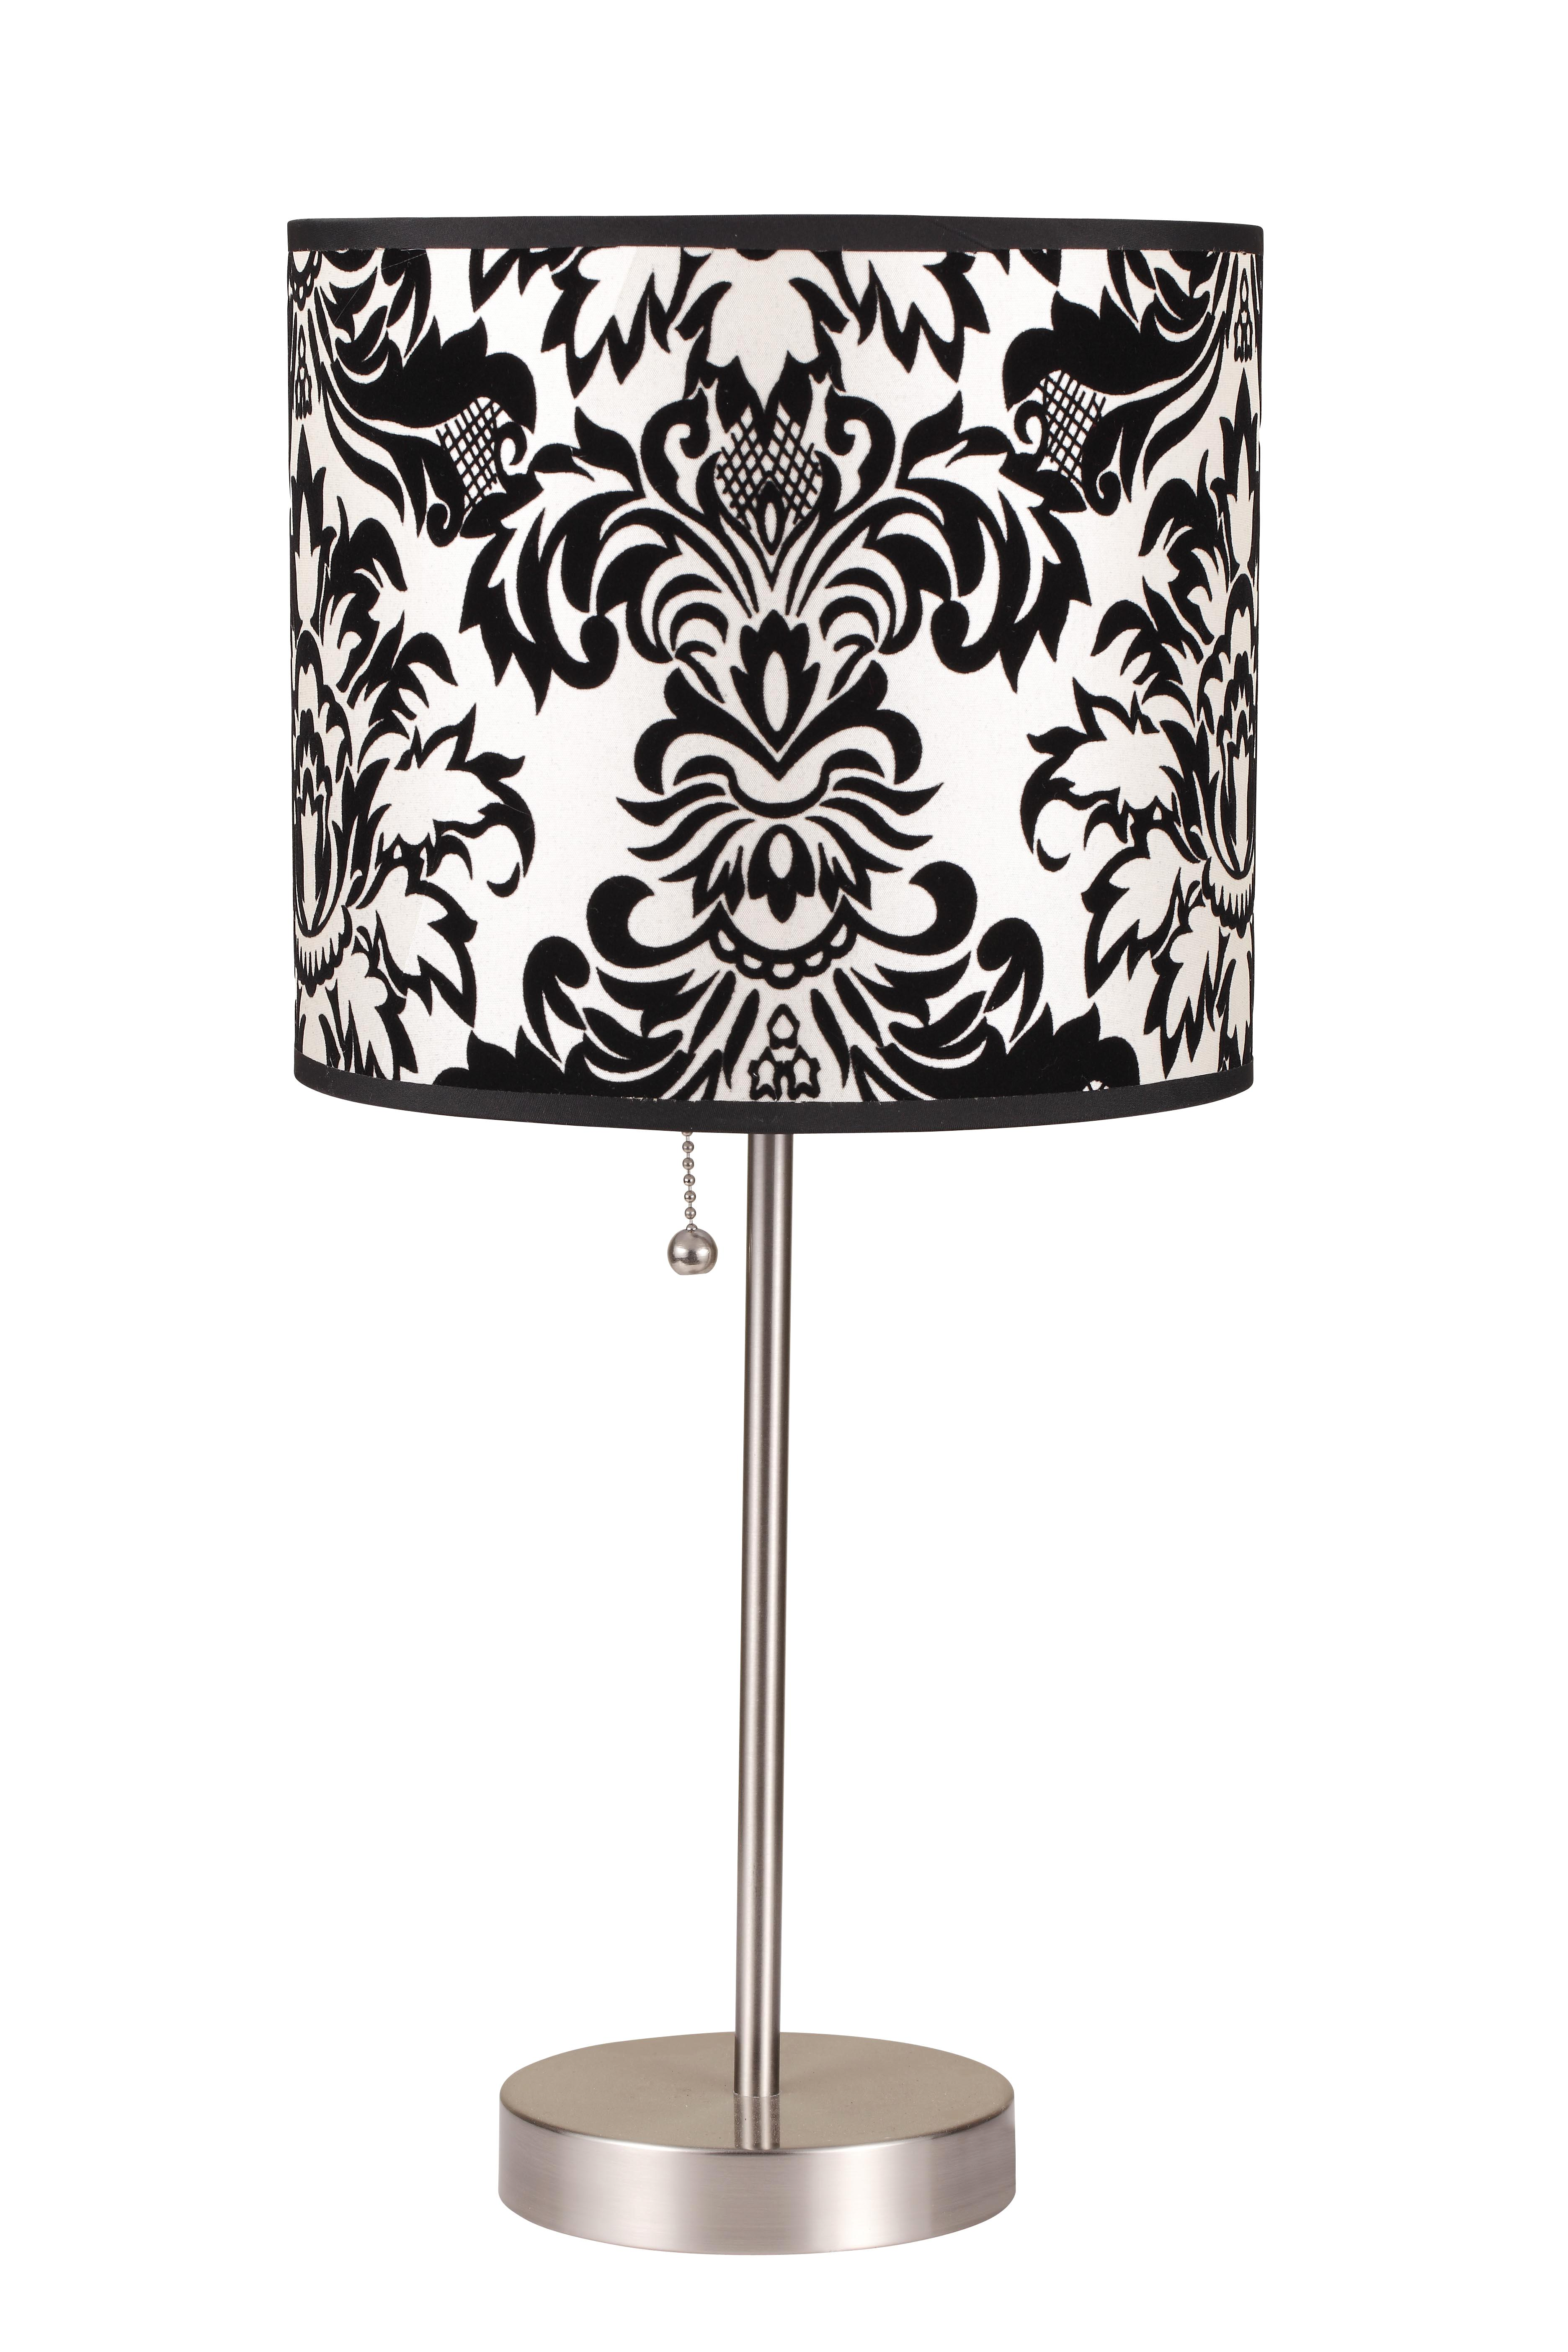 ore international 19 inch h black white print steel table lamp 2 piece. Black Bedroom Furniture Sets. Home Design Ideas